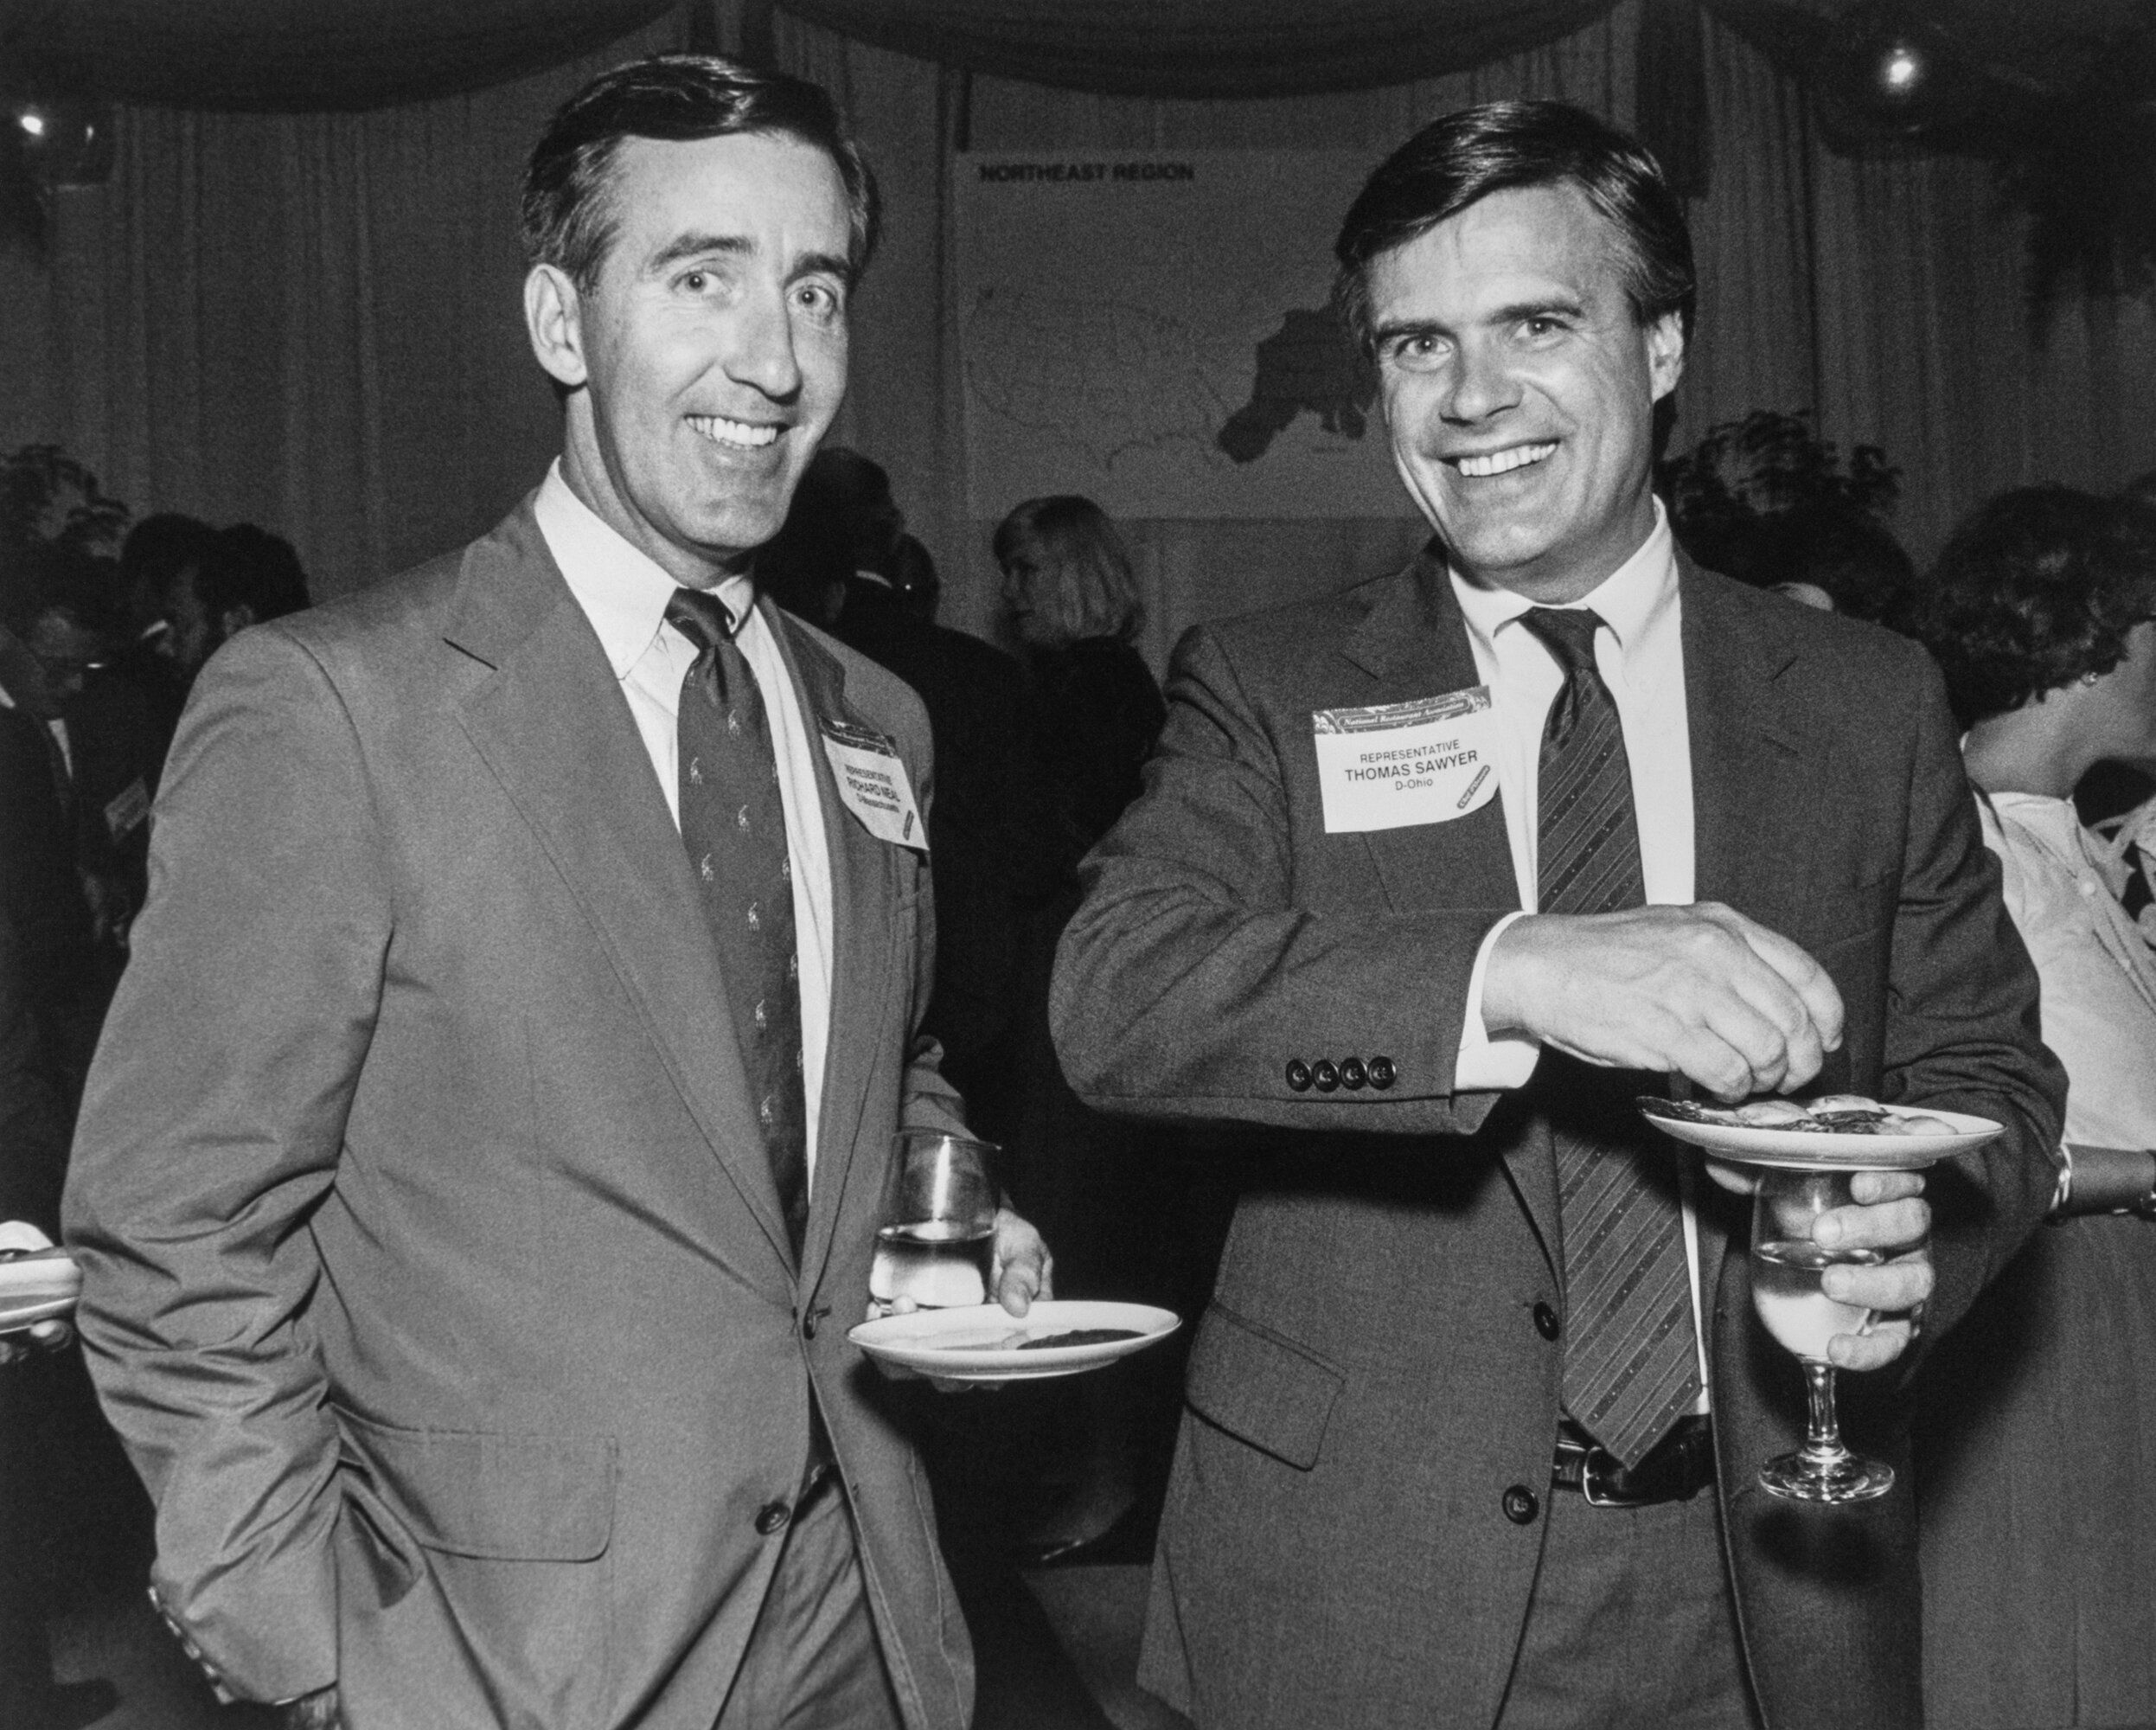 Rep. Richard Neal (D-Mass.), left, at a political event in September 1989, during his first term in Congress. He remains popu